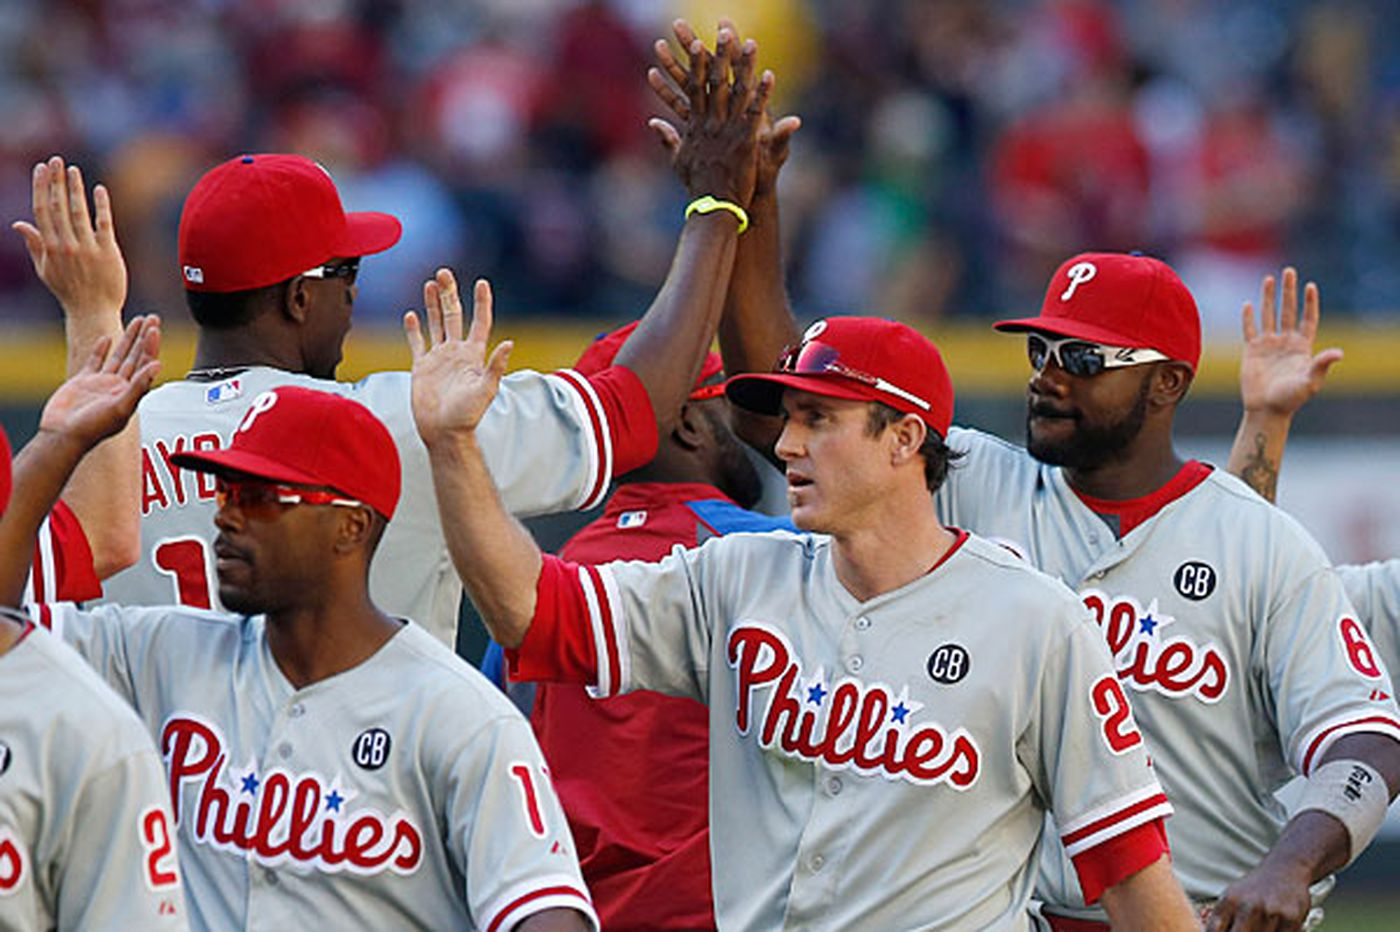 Phillies, Nationals by the numbers